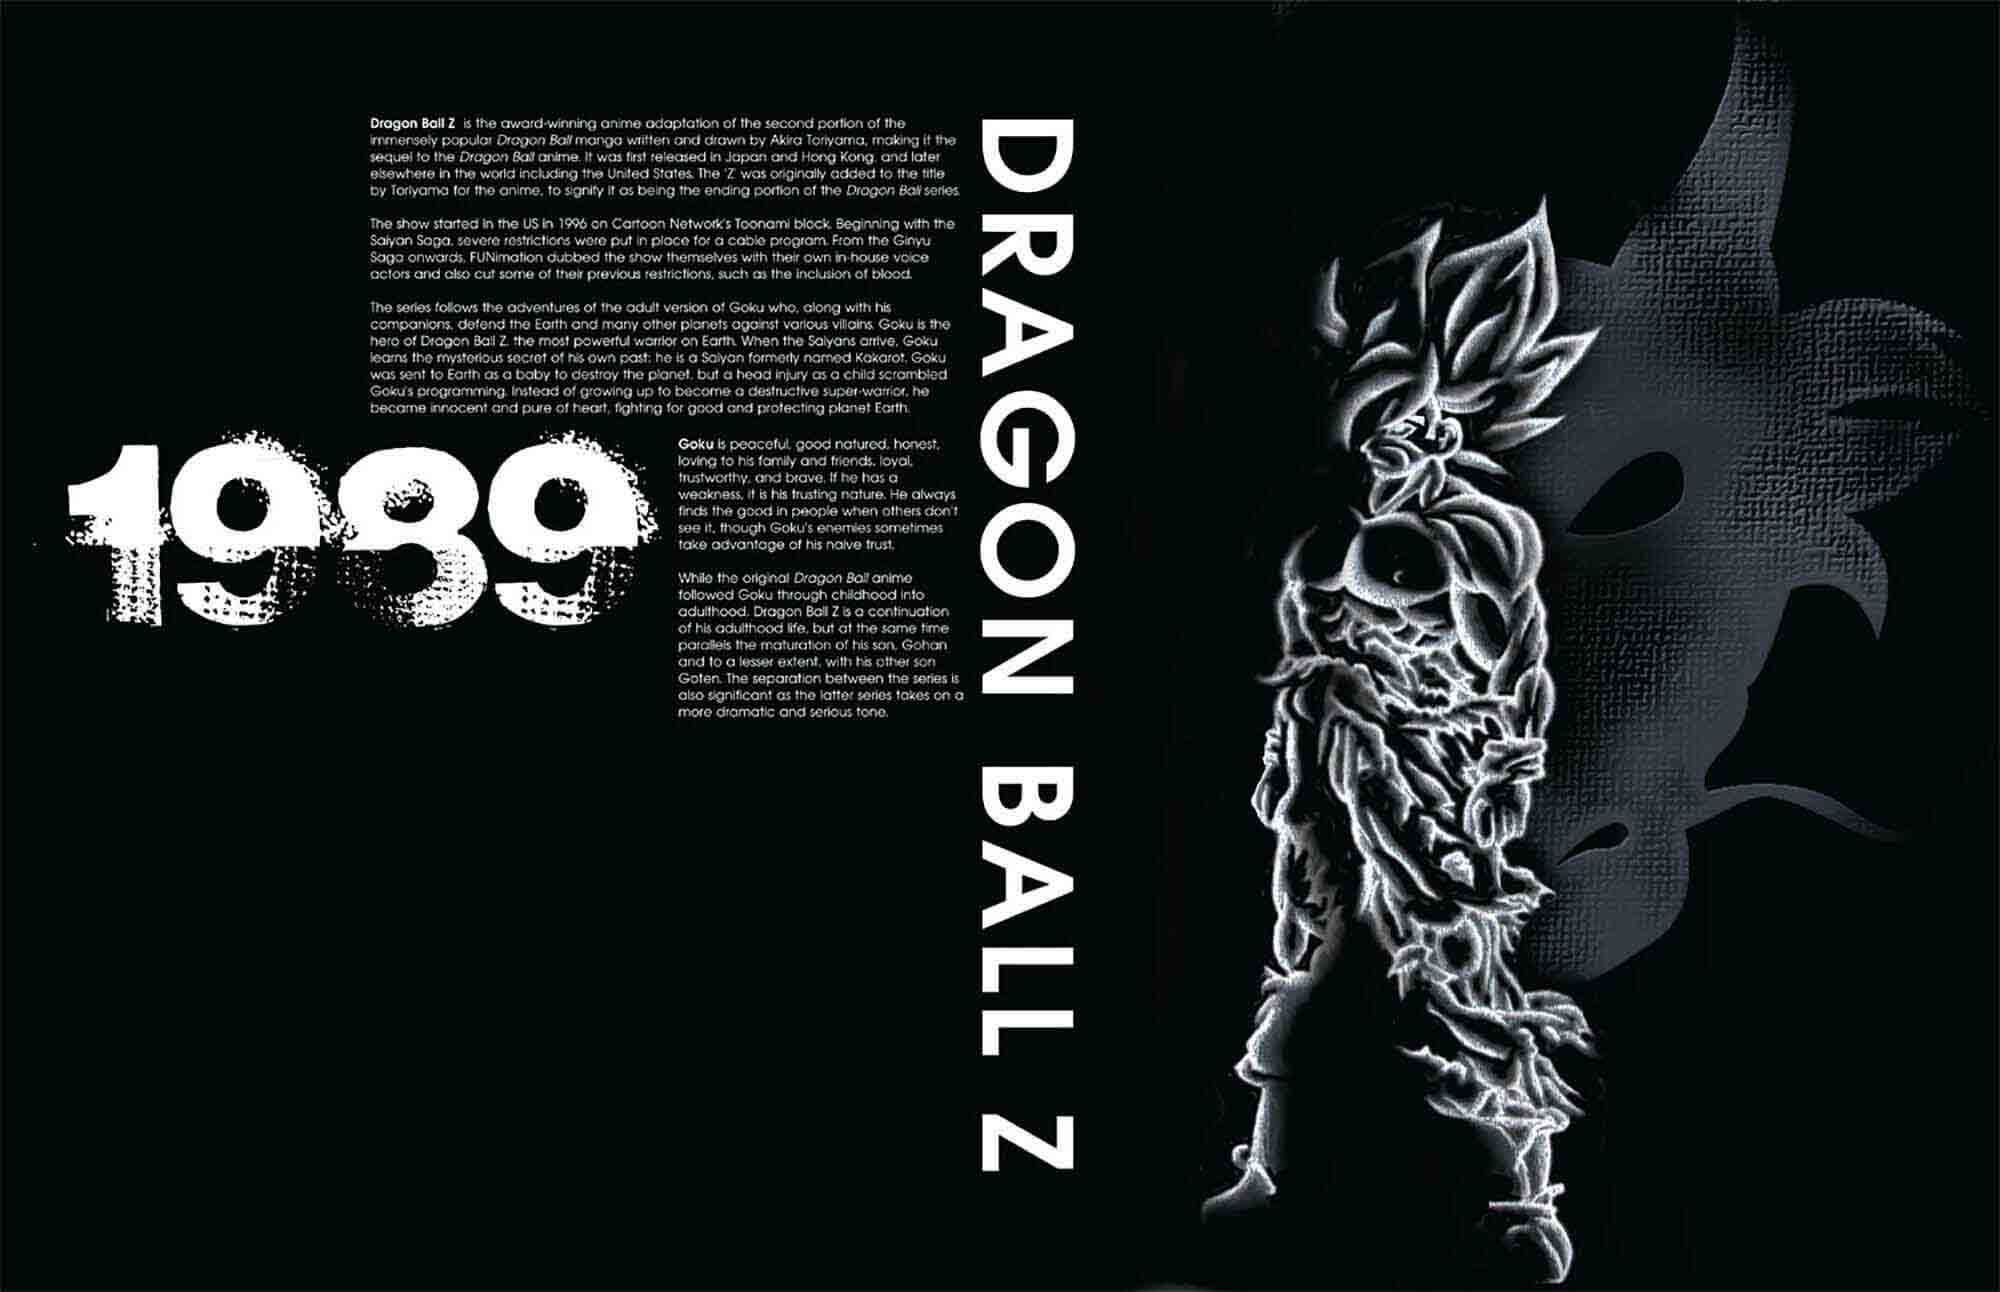 Eighties Animation Exhibition Dragon Ball Z Poster